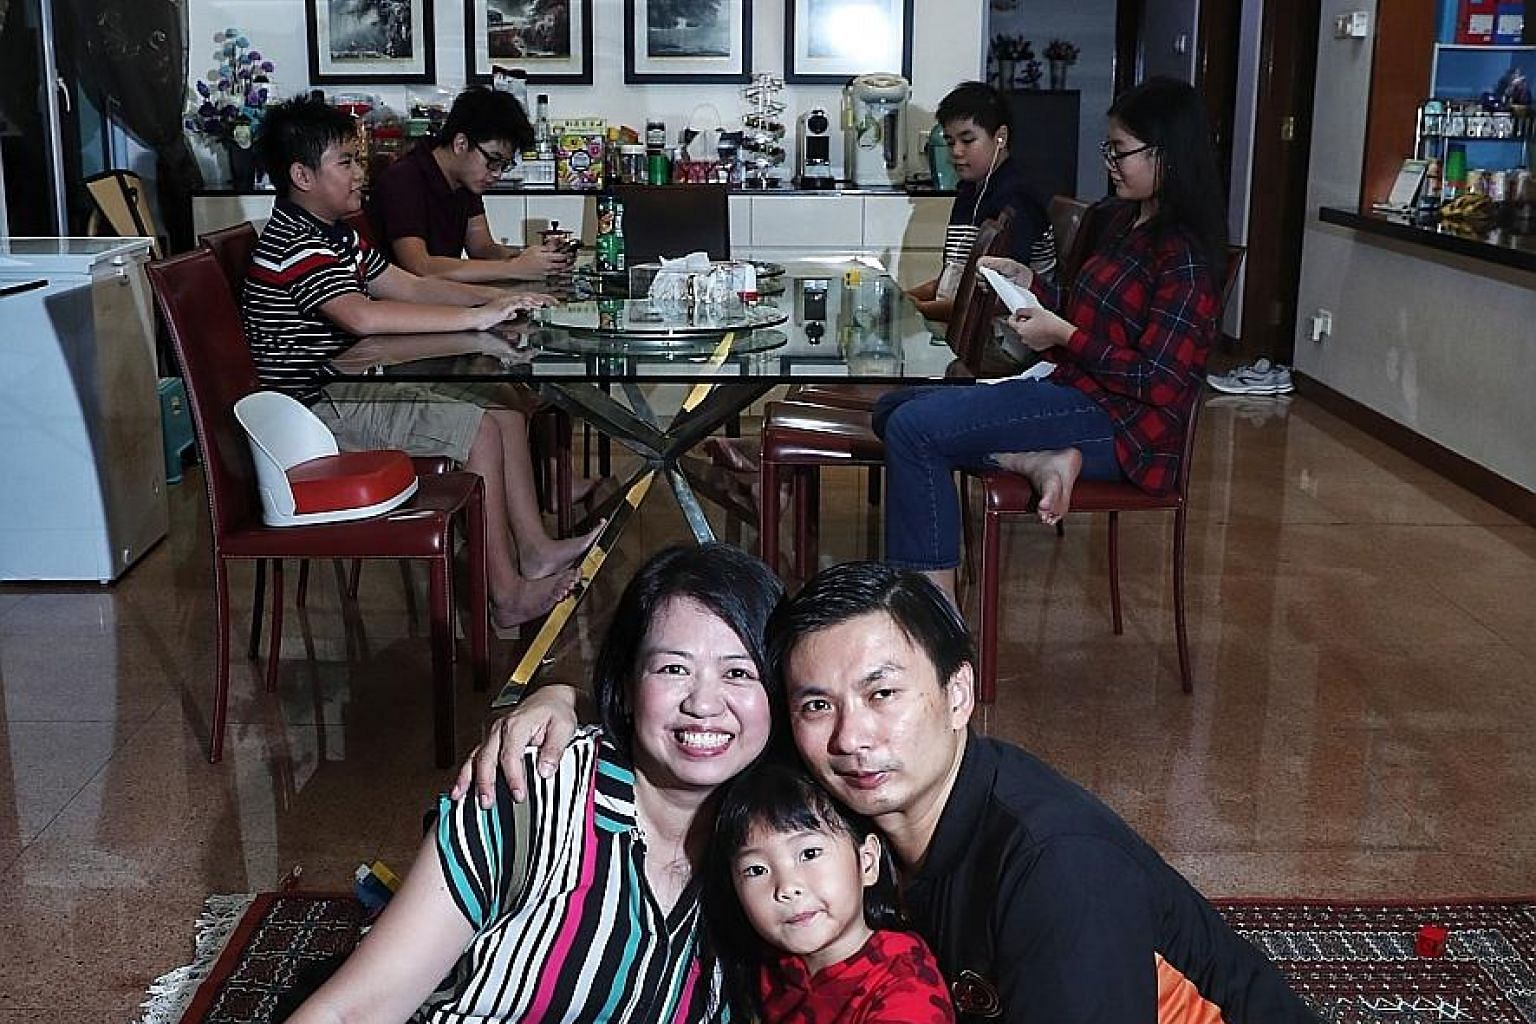 Madam Tay Hwee Ling and her husband Kelvin Lim adopted Mikaela (centre), five, whom they have taken care of since her birth. Seated behind them are the Lim's biological children, who are aged between 12 and 16. There have been a few foster parents li